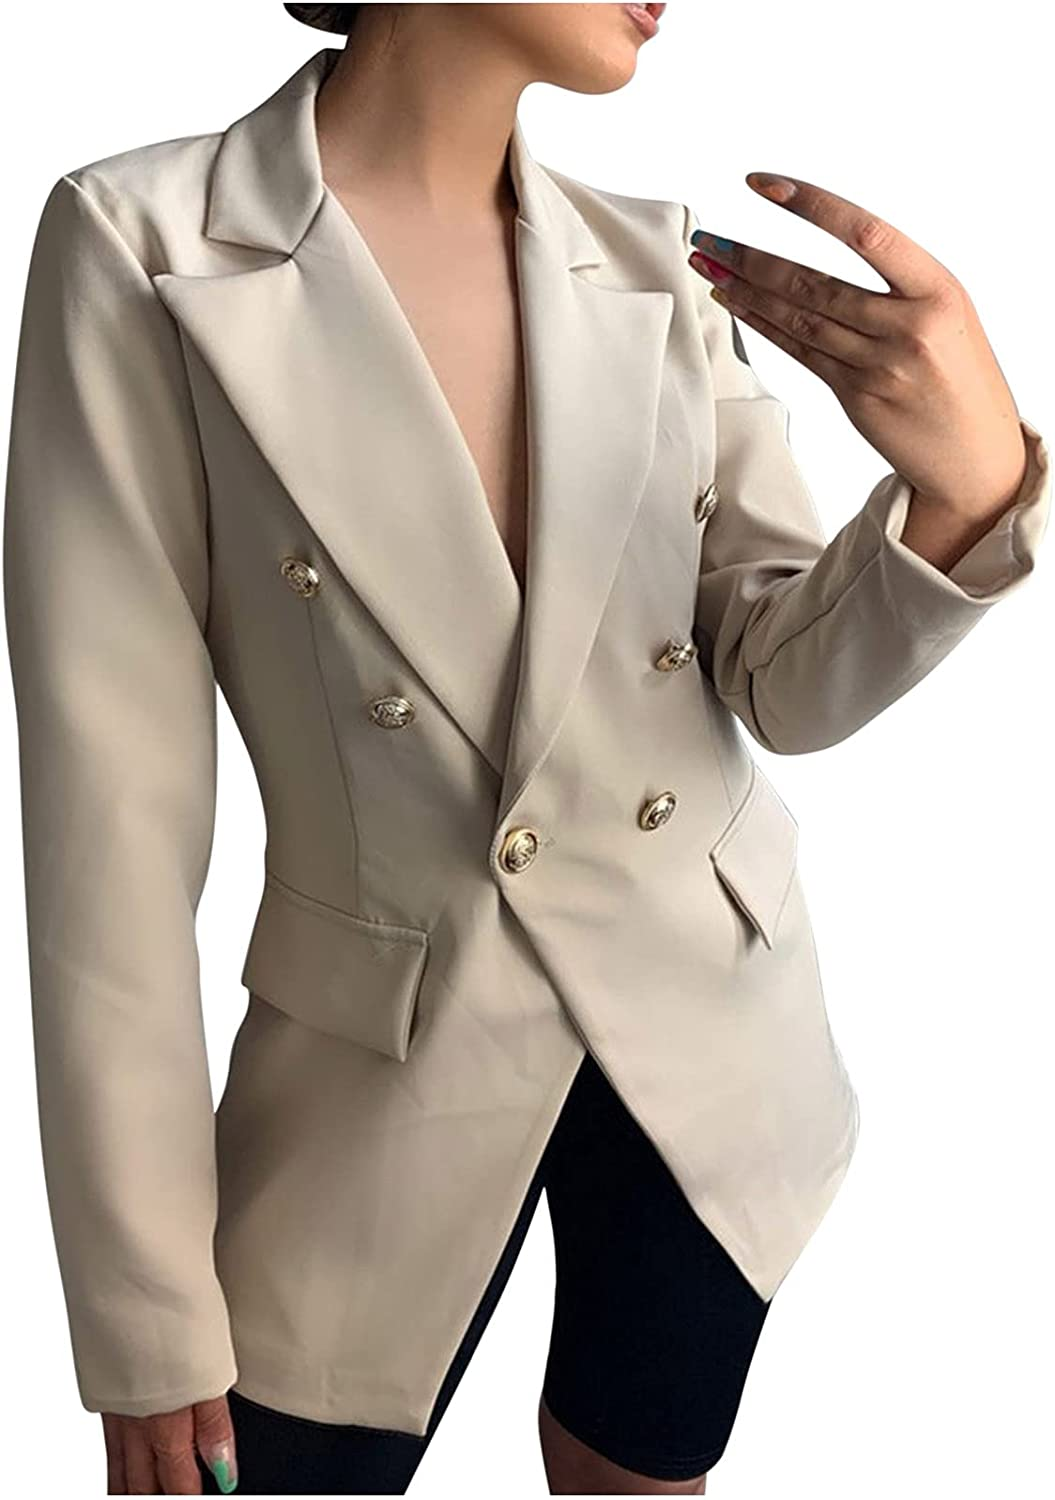 Women's Suit Blazers Fitted Long Sleeve Work Casual Solid Color Double Breasted Jakcet Dressy Pocket Notched Tunic Top